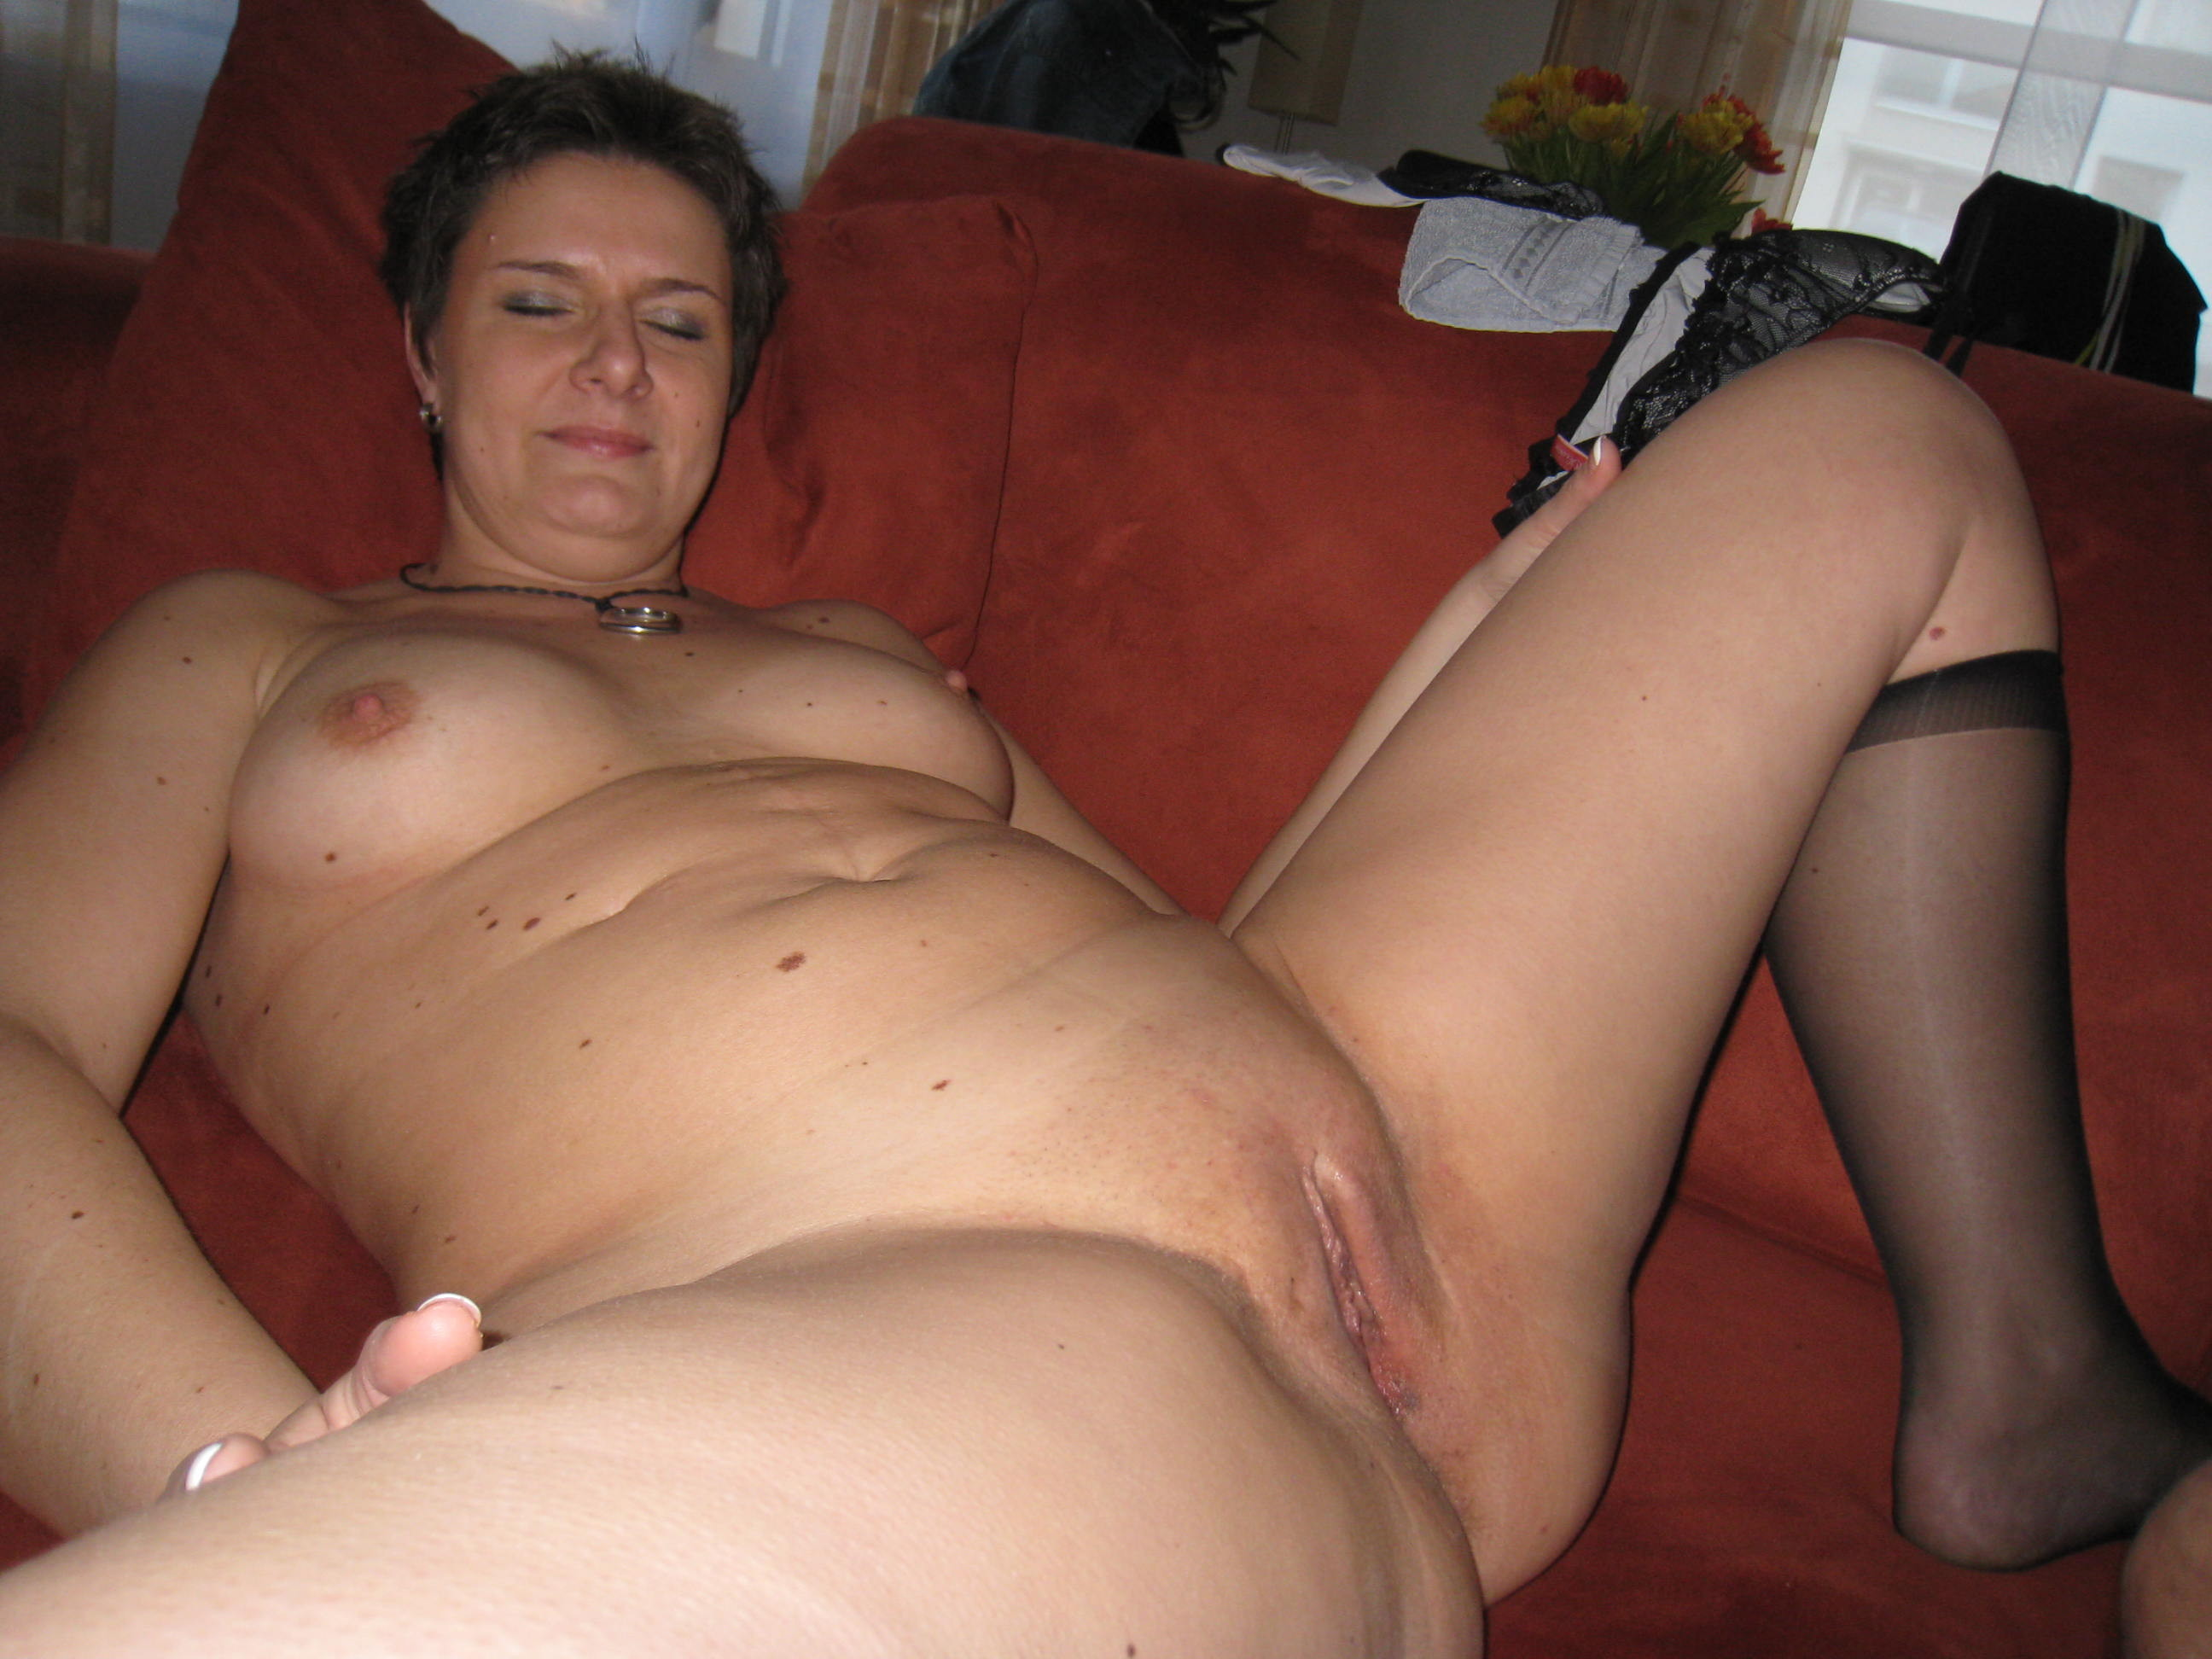 Drunken passed out milf